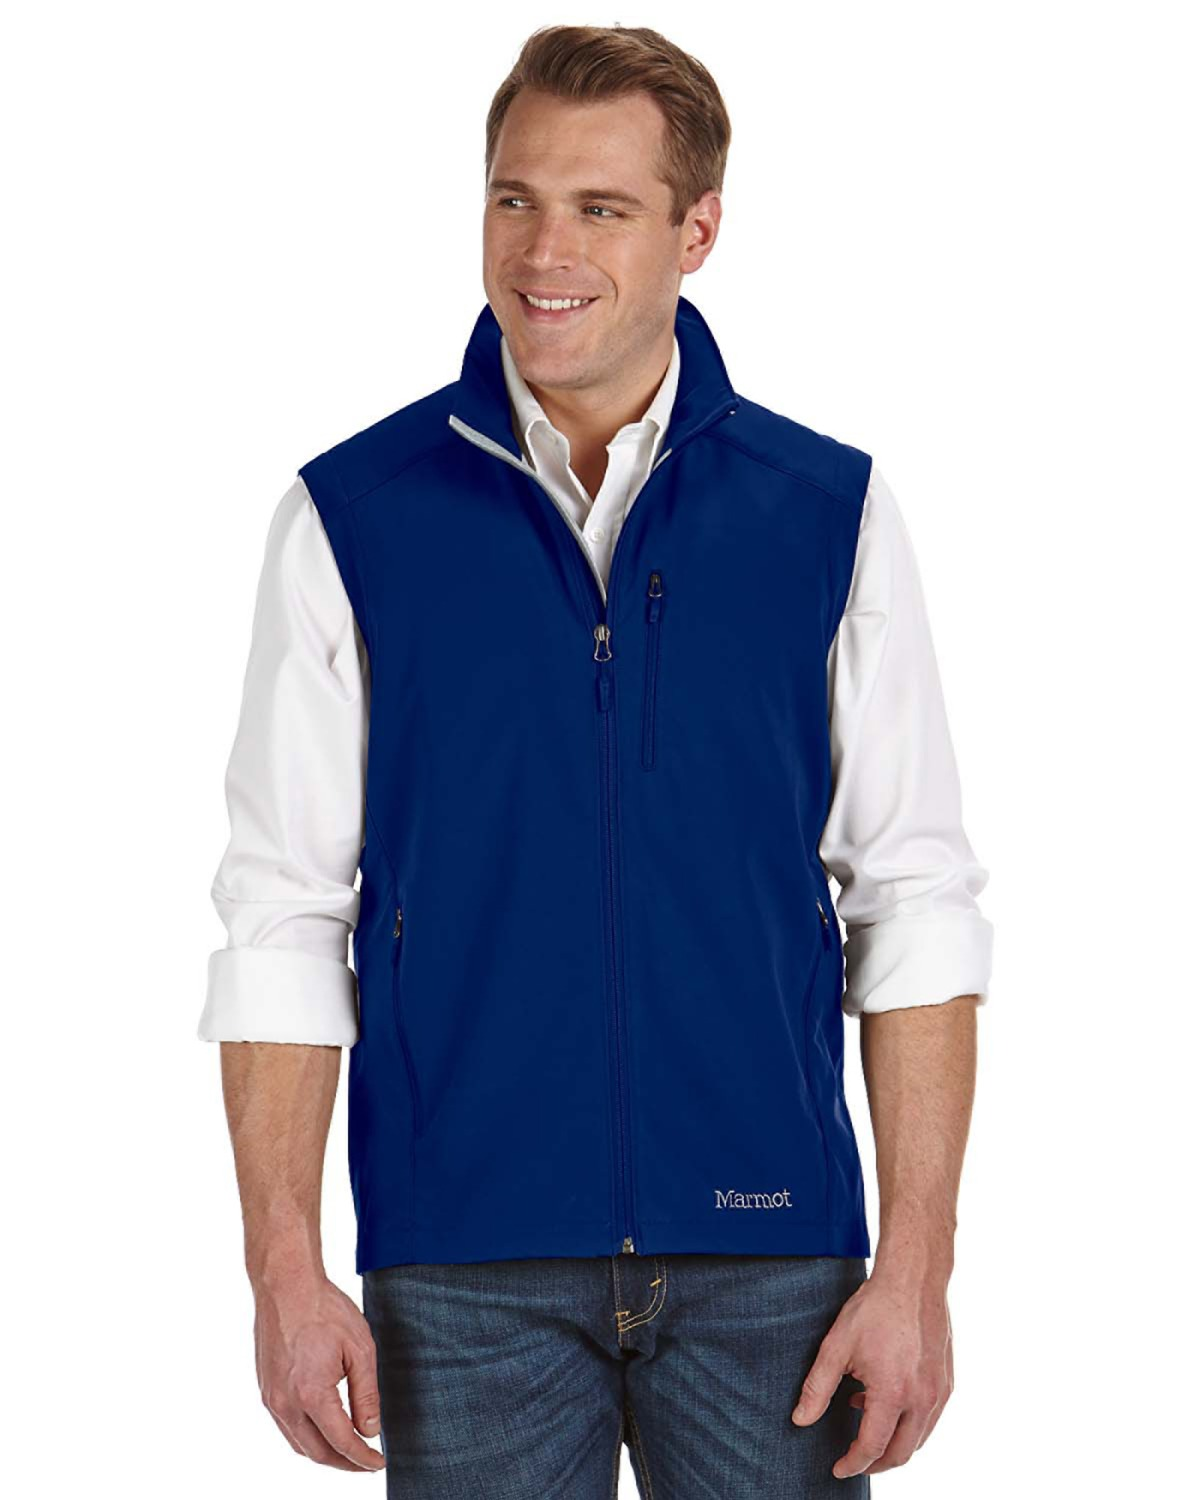 Marmot - 98070 Men's Approach Vest, Pensacola, Embroidery, Screen Printing, Logo Masters International